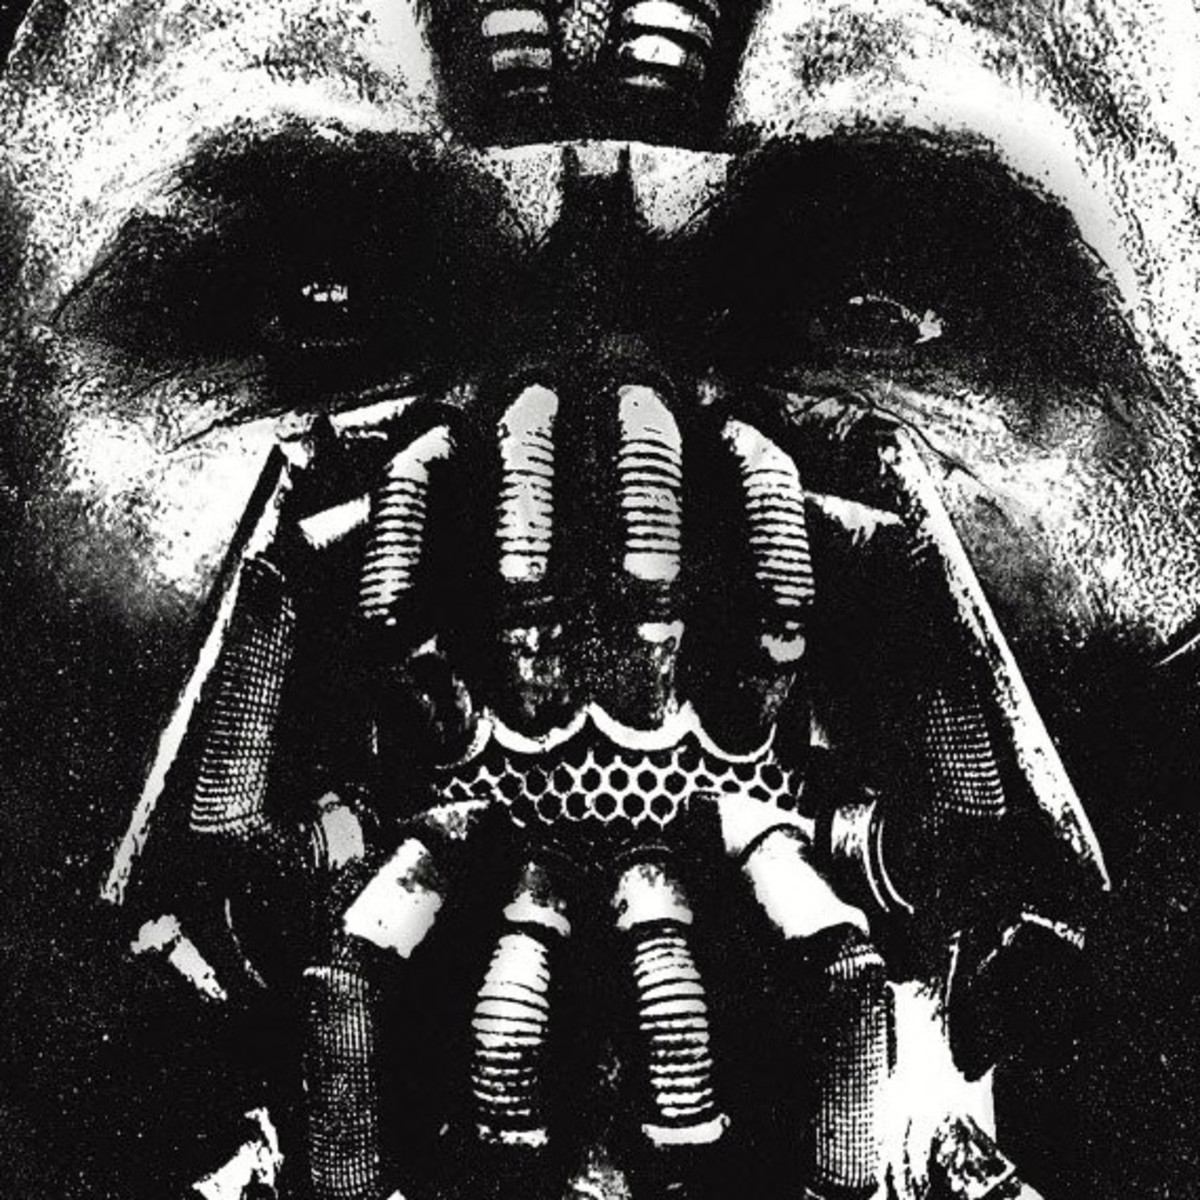 the-dark-knight-rises-bane-poster-01